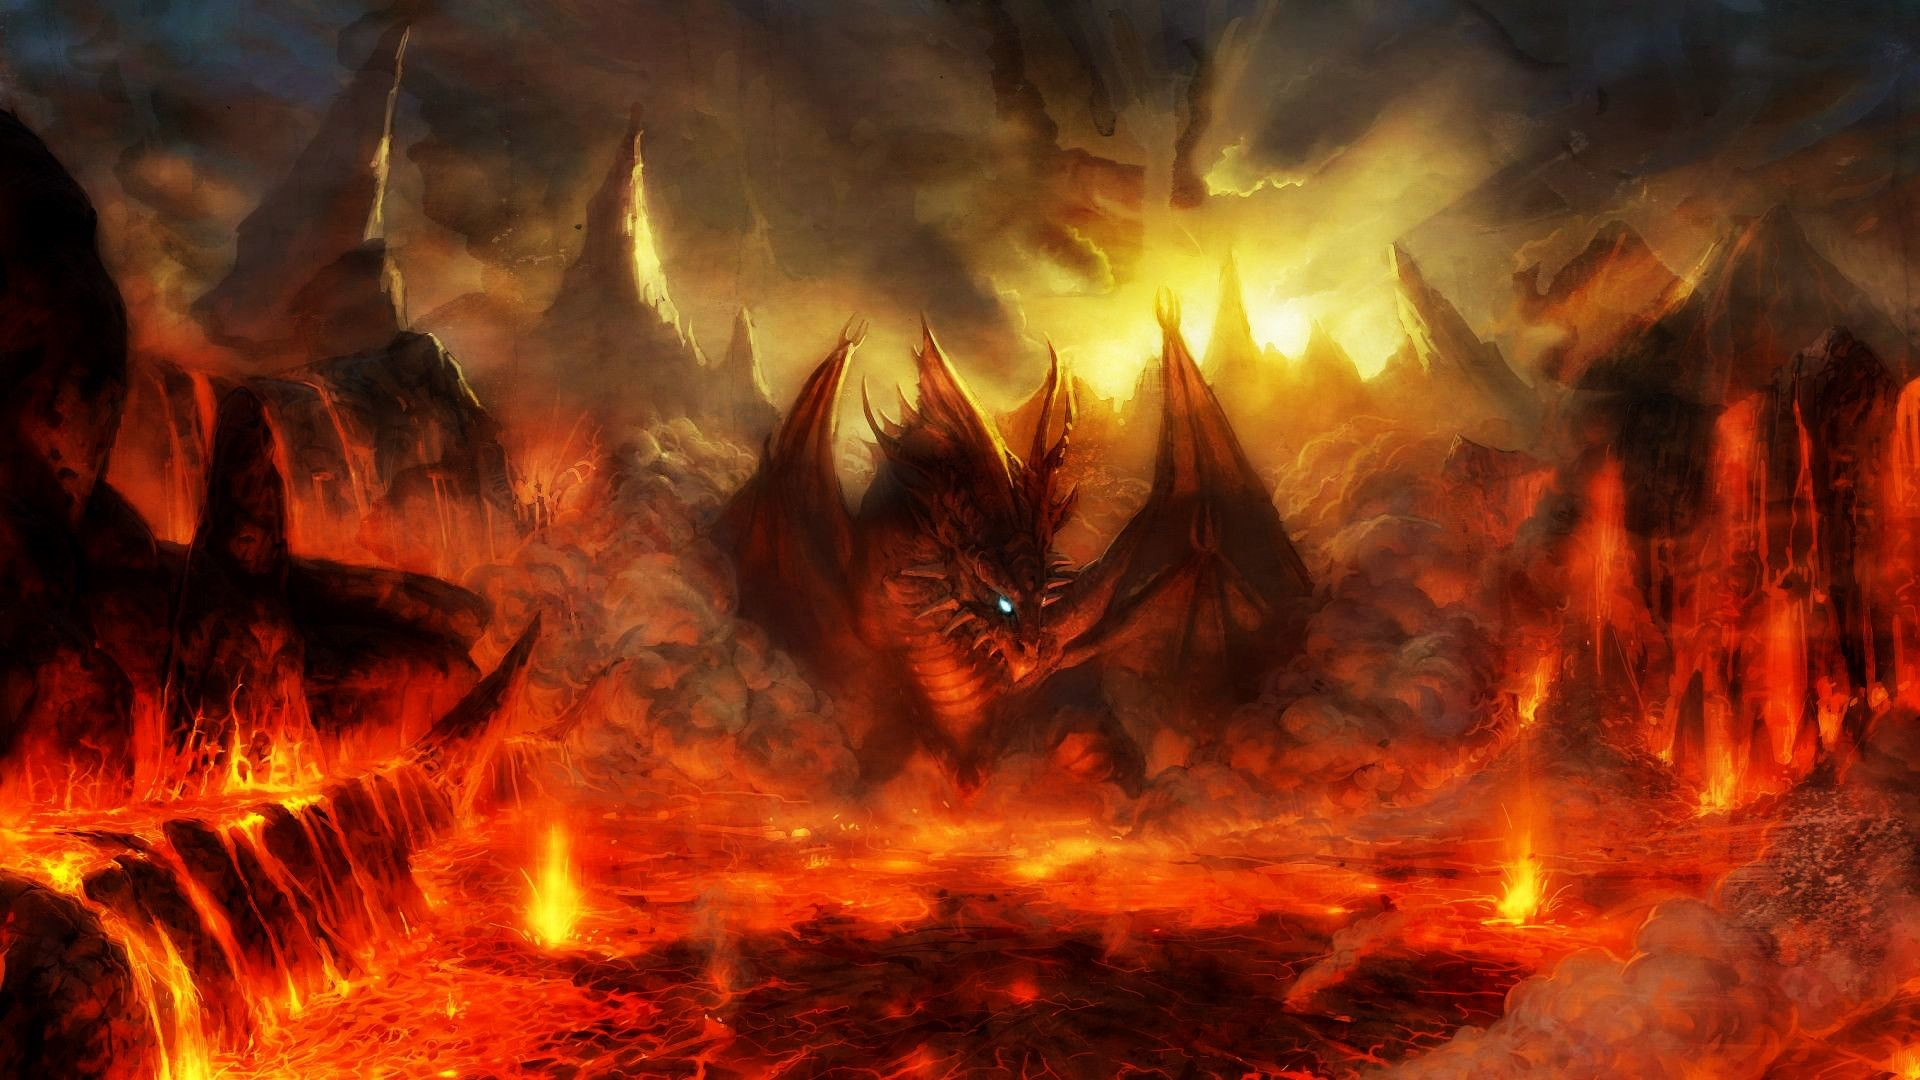 Free Wallpapers – Dragon in the flame of hell wallpaper